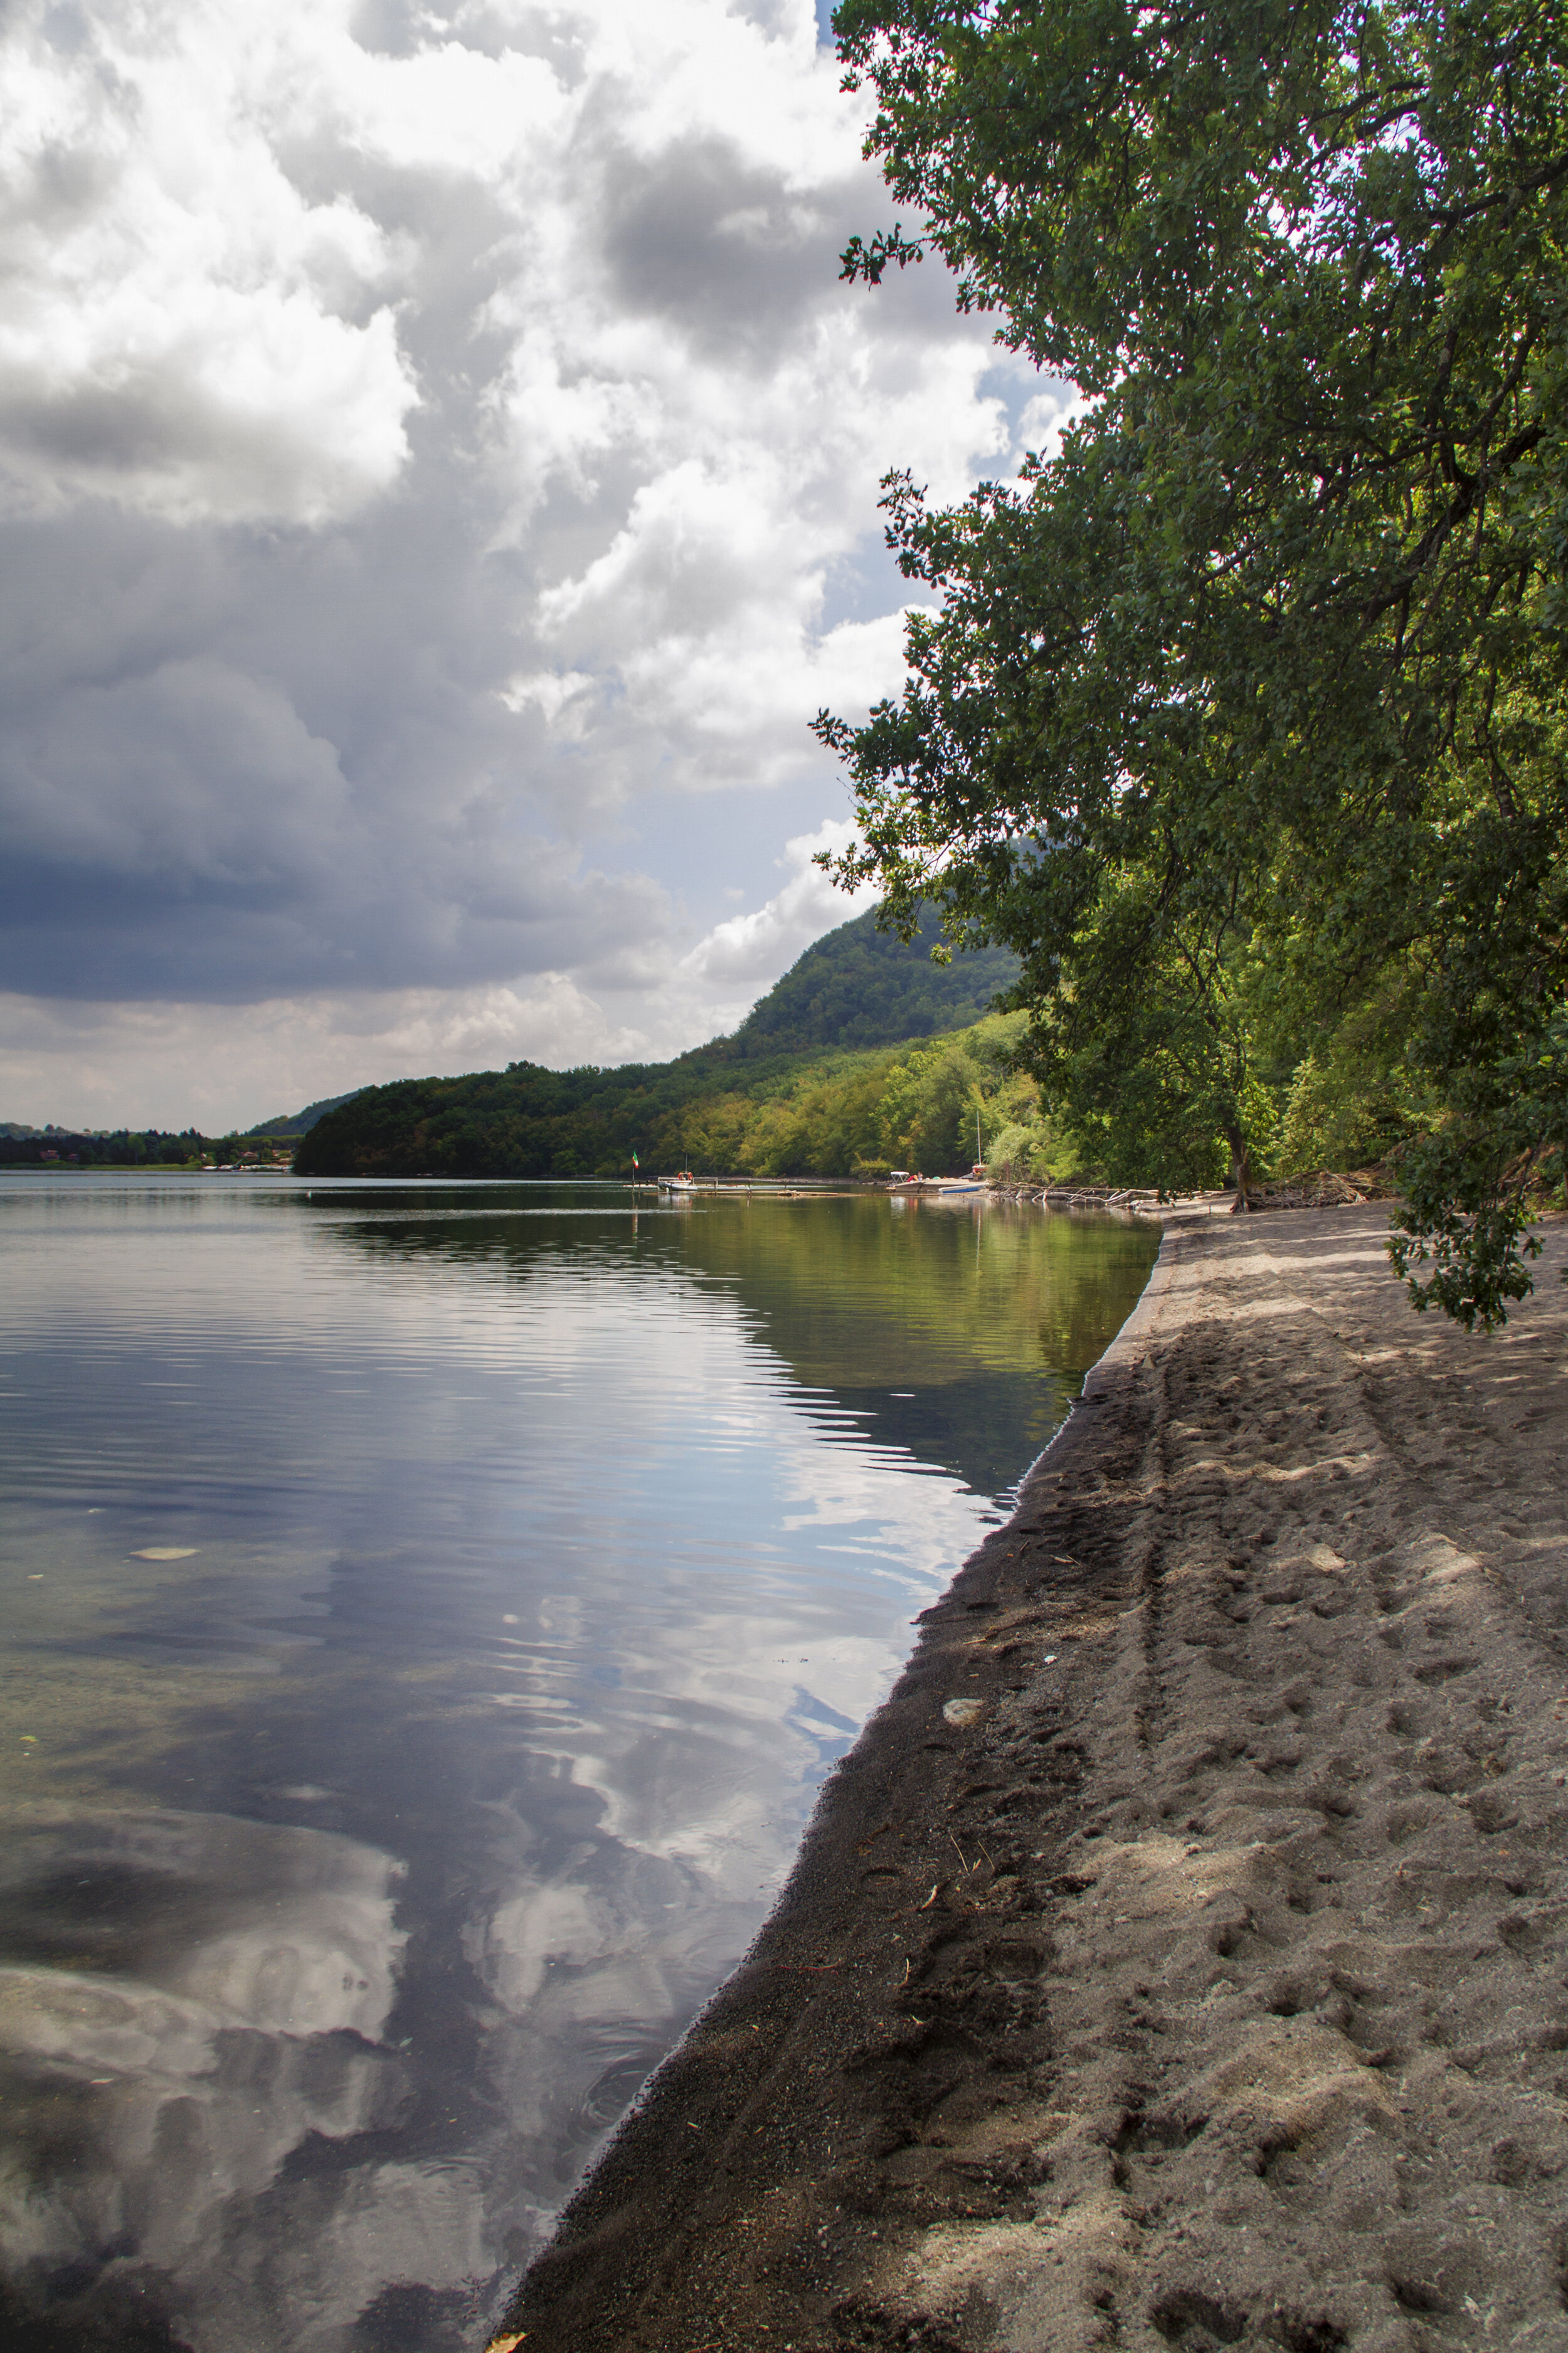 Lake Vico - Lake Vico is a volcanic lake located in the middle of the Cimini Mountains and a protected Natural Reserve. A popular destination in both summer and winter. Canoeing and horse riding are just some of the activities available.